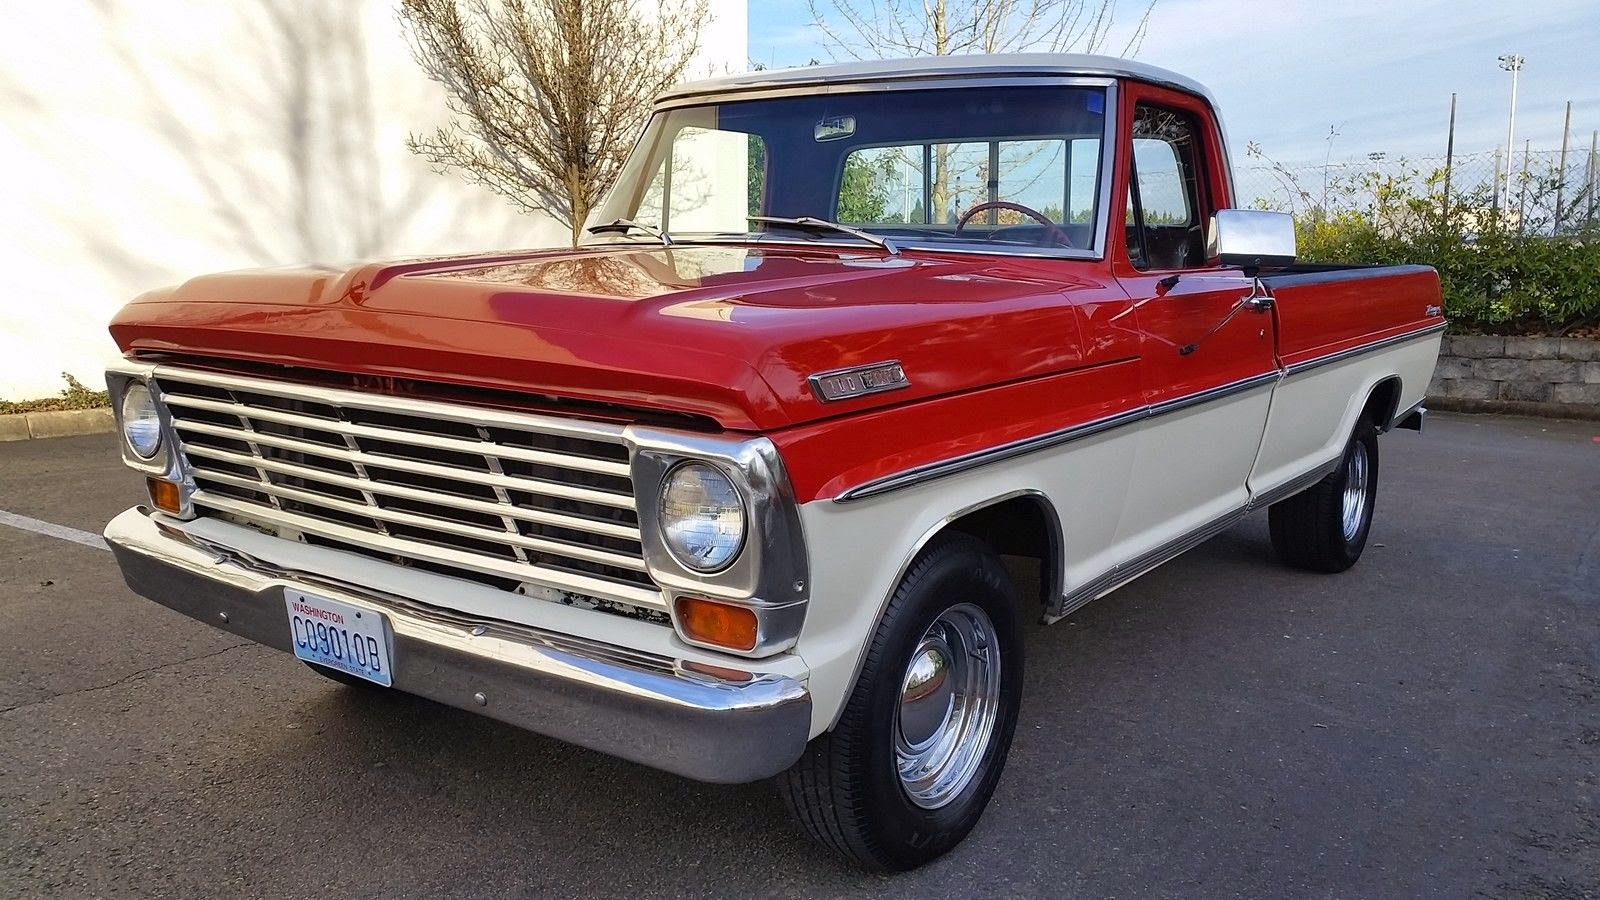 All American Classic Cars: 1967 Ford F100 Pickup Truck